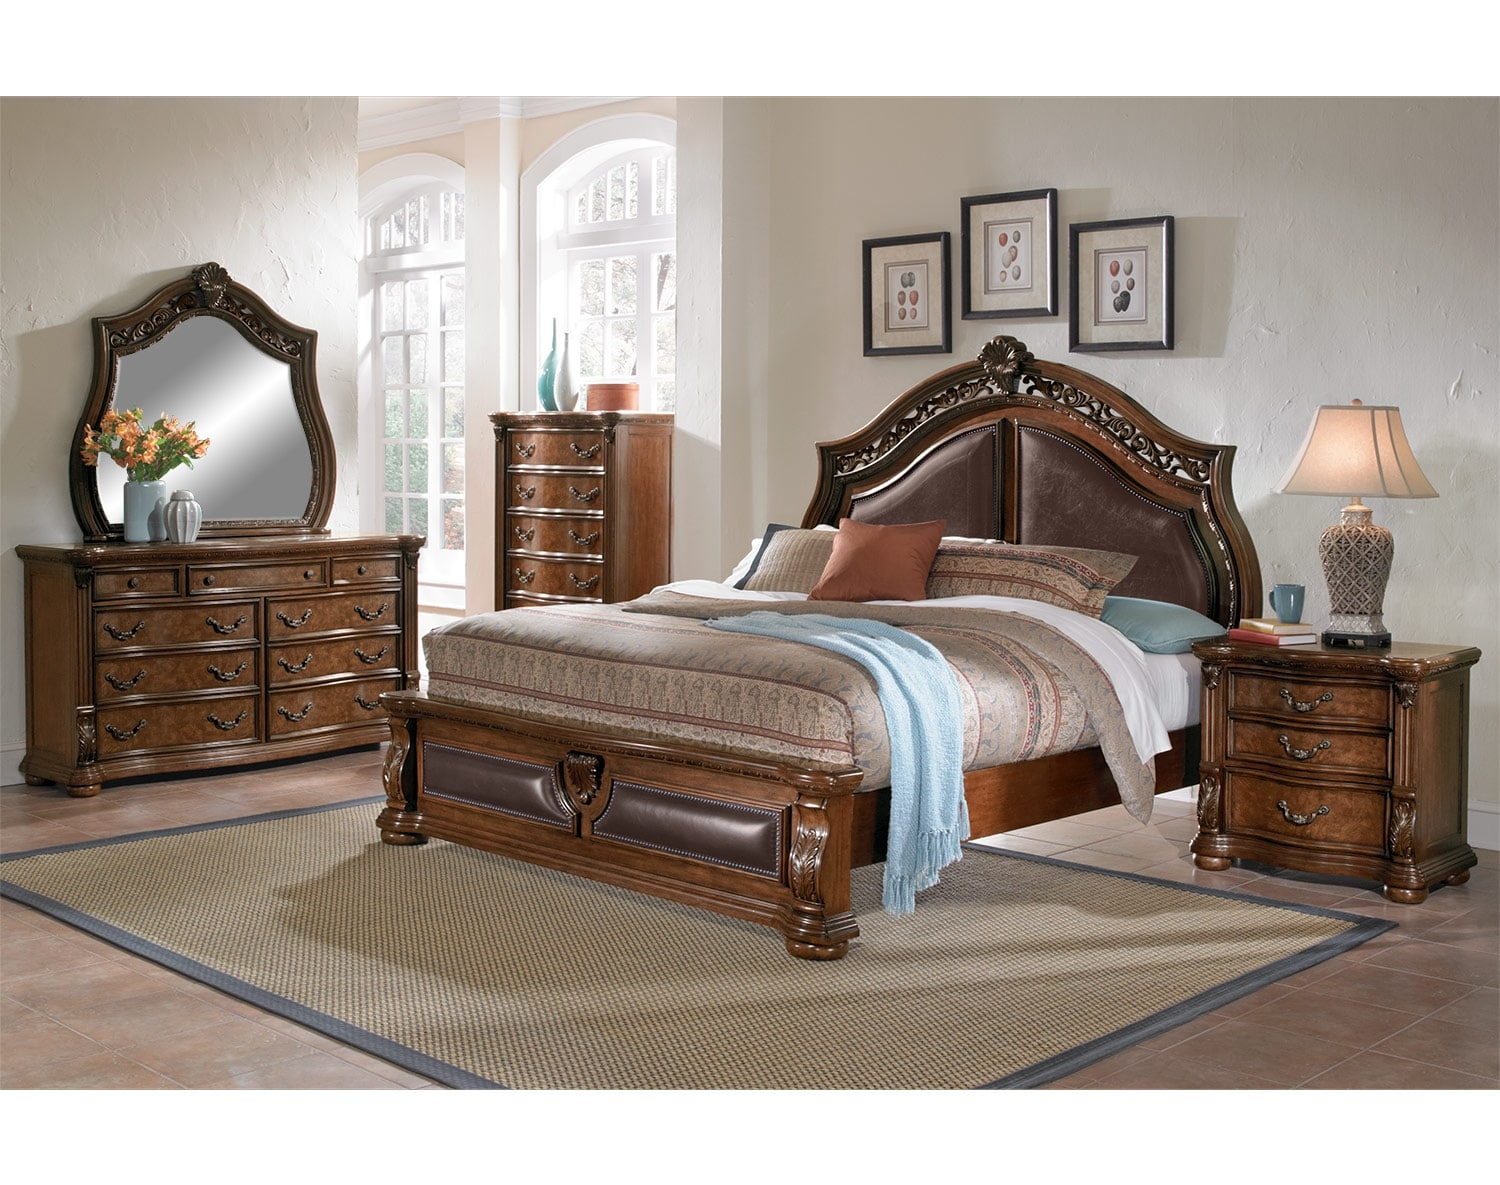 The Morocco Collection Pecan Value City Furniture and Mattresses